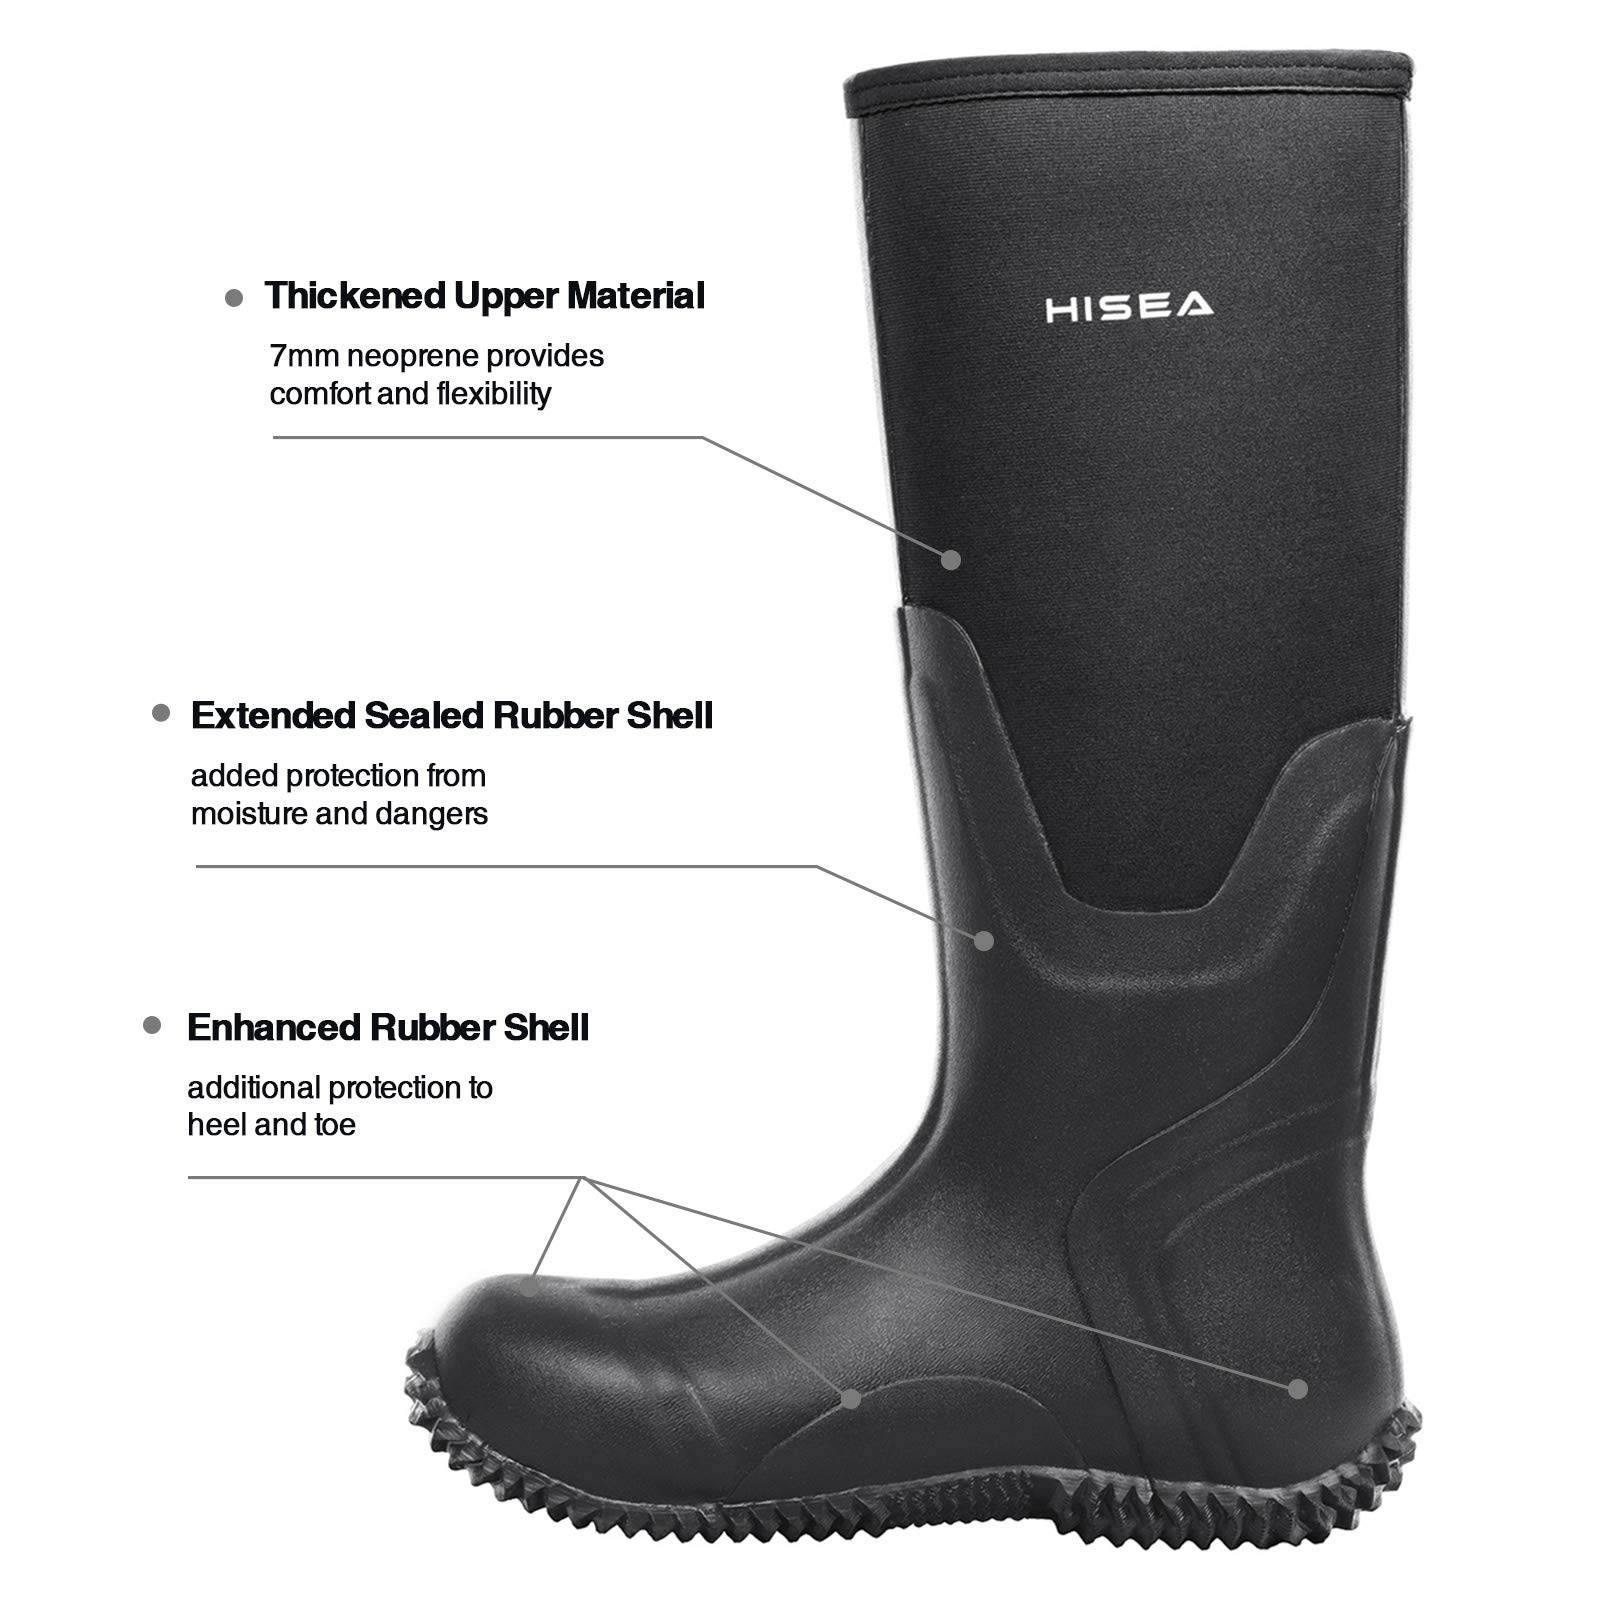 Hisea Mens Insulated Rubber Neoprene Boots Waterproof Durable Insulated Outdoor Winter Snow Rain Boots Hunting Arctic Boot Black Size 8 by Hisea (Image #3)